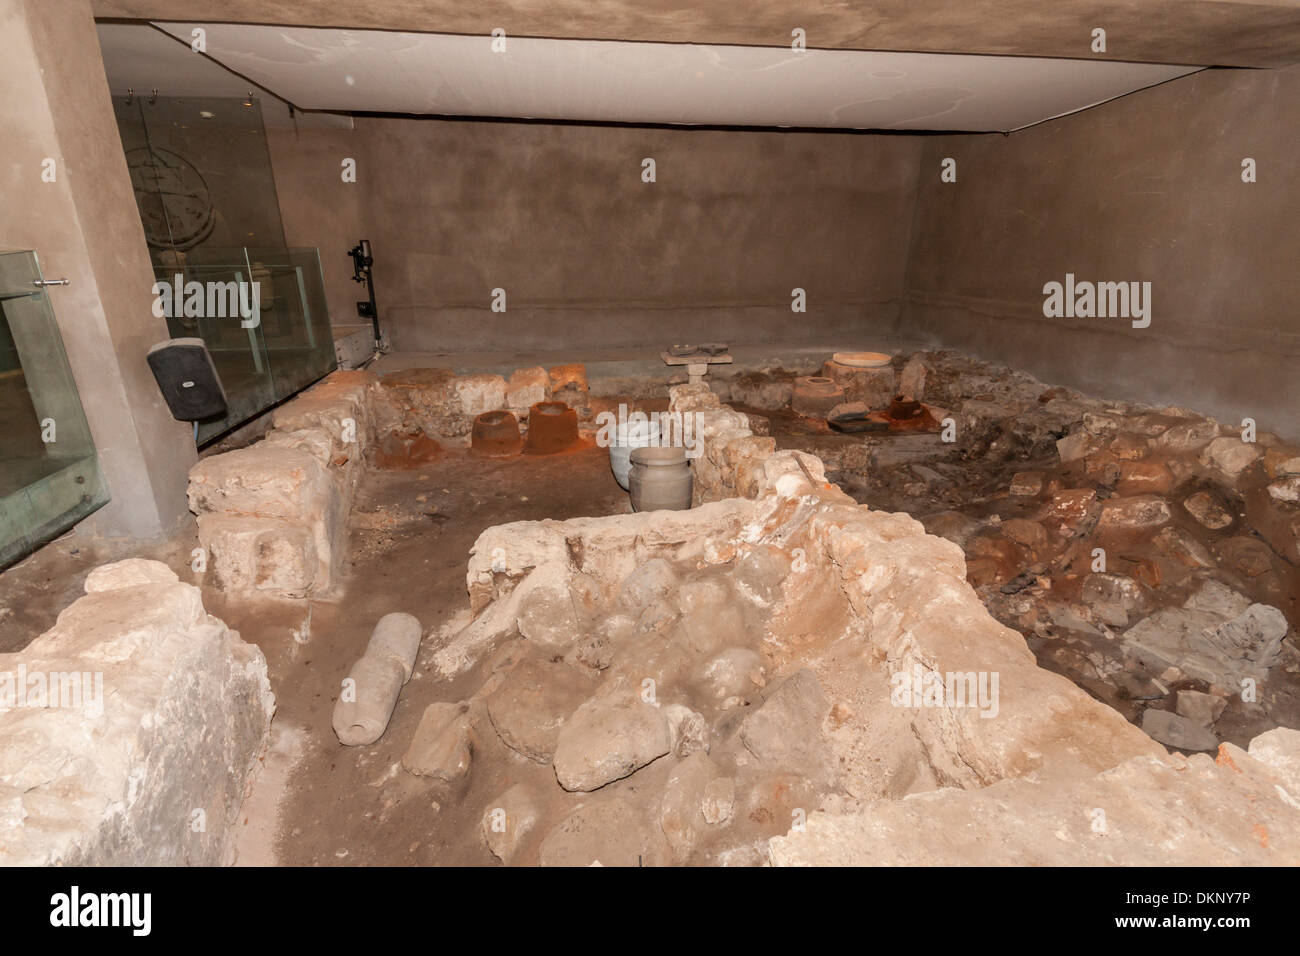 "Israel. ""The burnt house"", excavation from the Second Temple period, showing signs of the roman destruction of Jerusalem. Stock Photo"